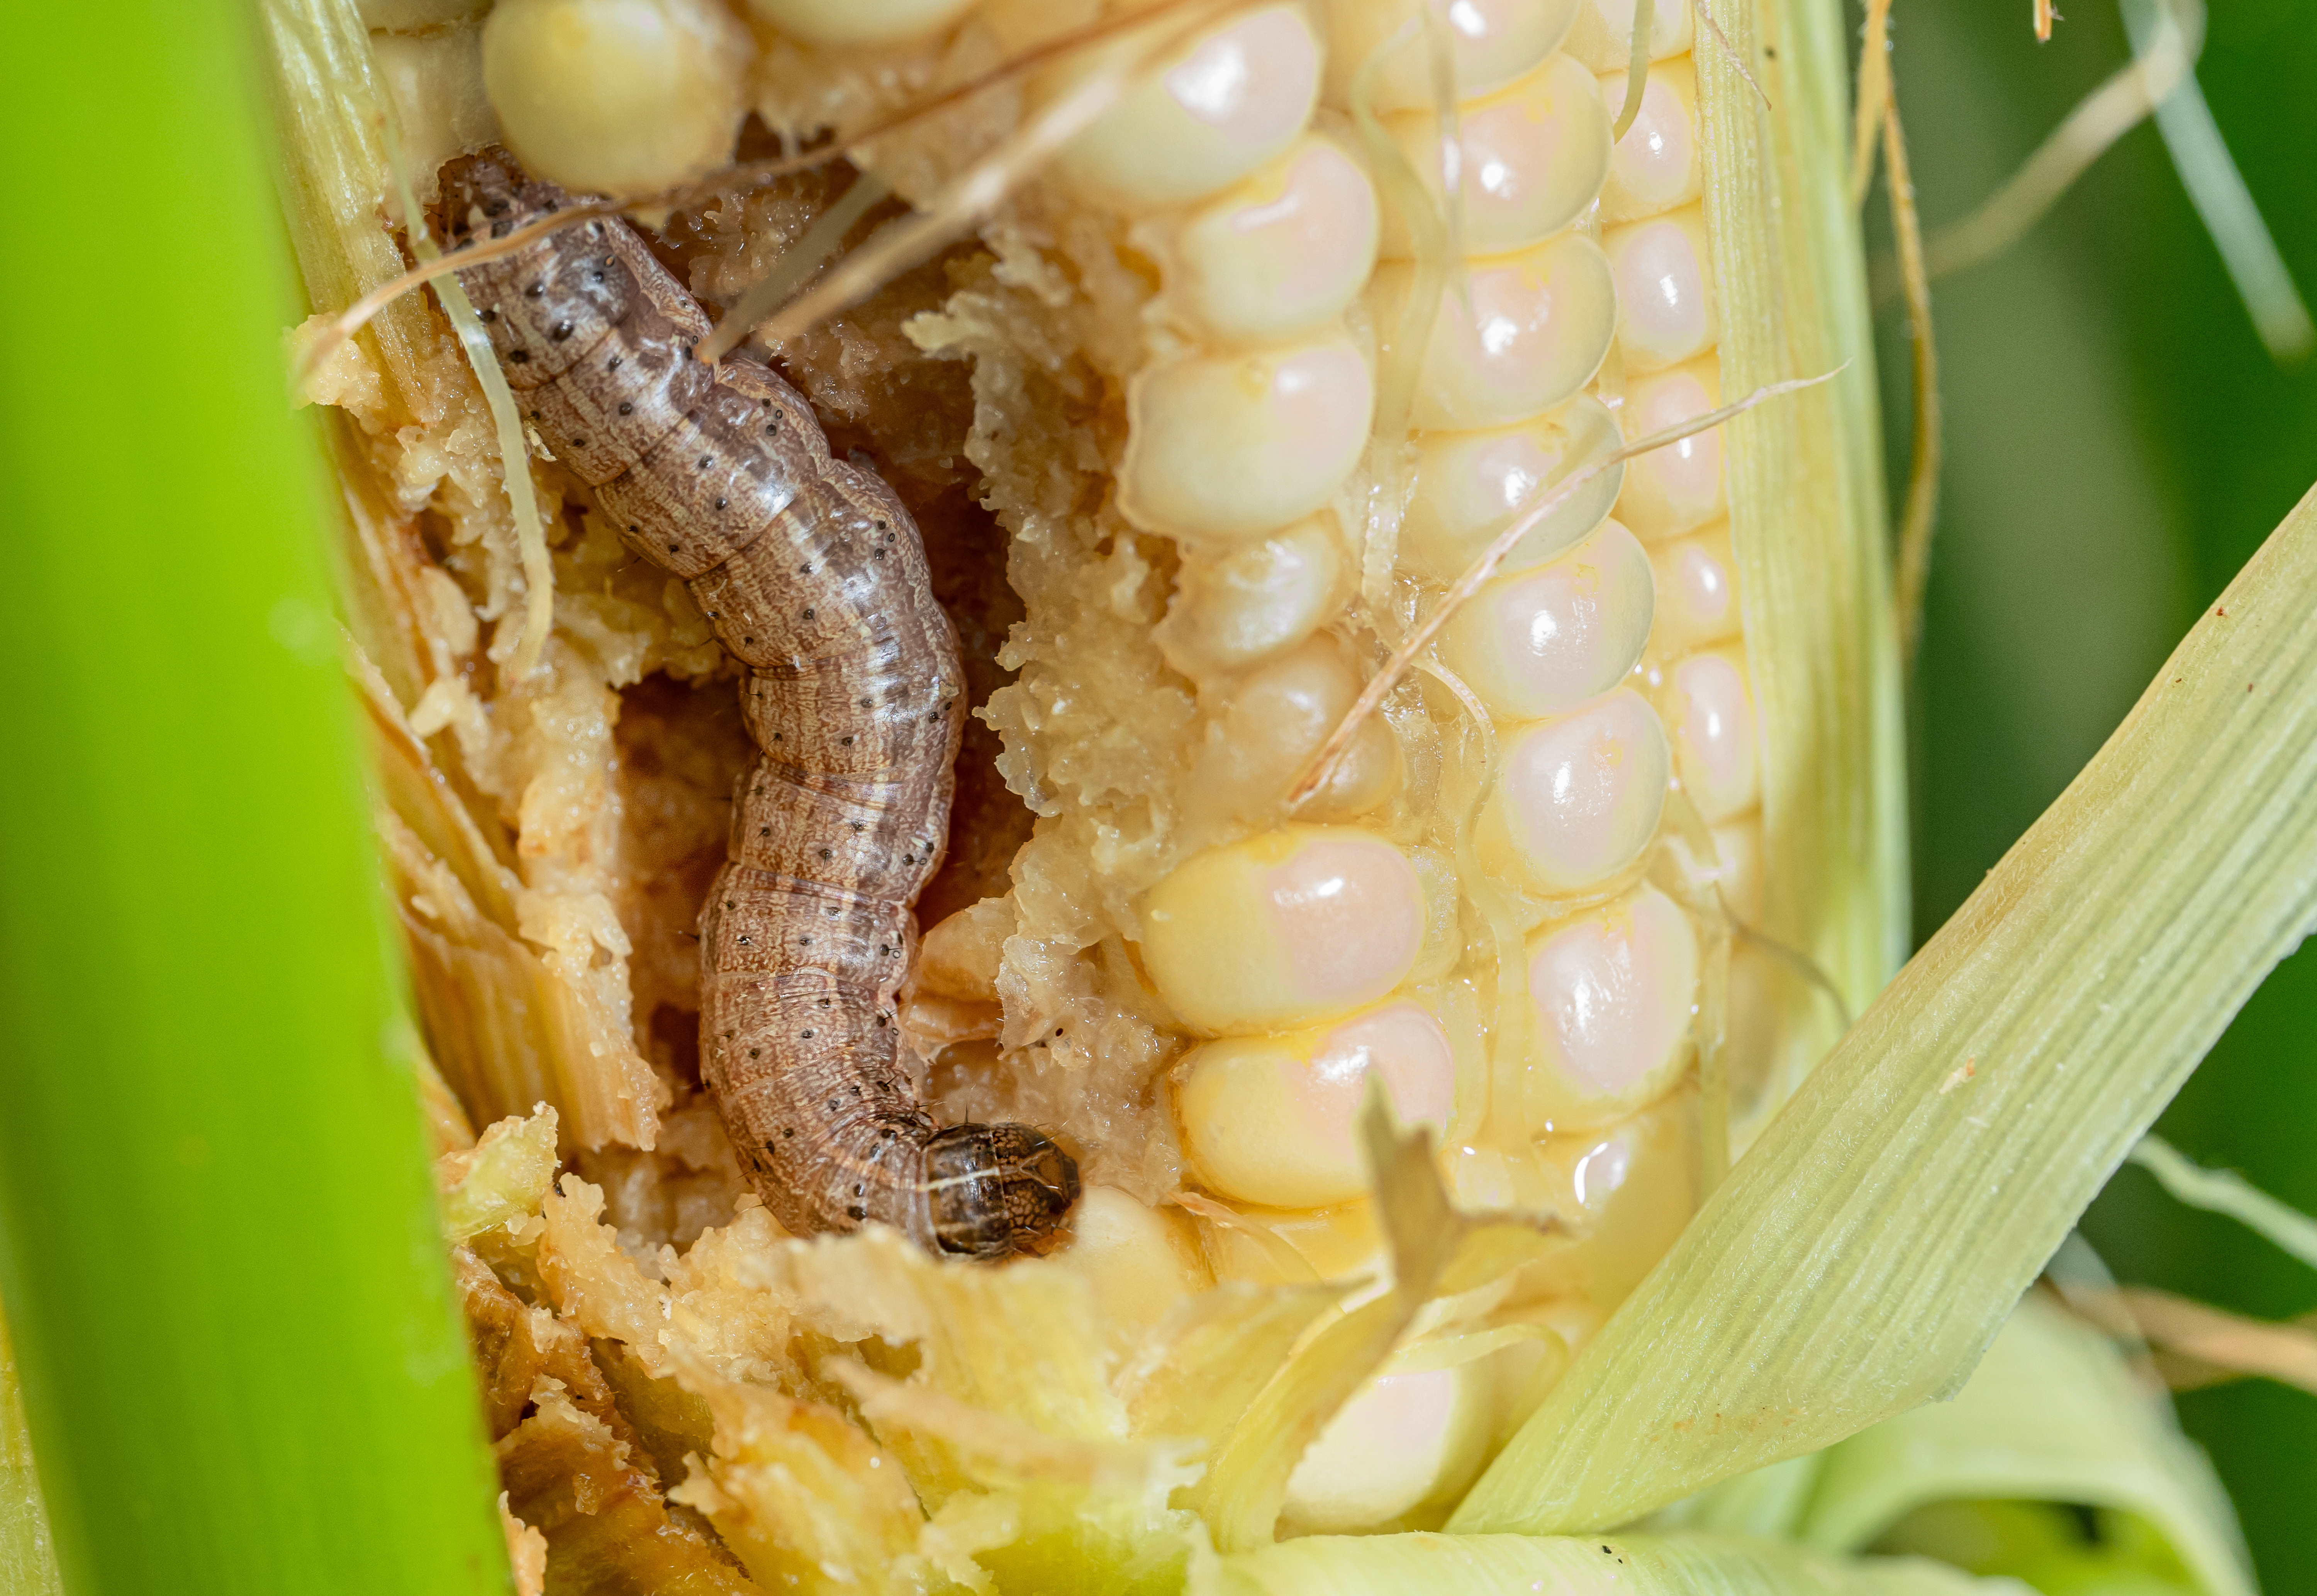 Fall armyworm on damaged corn with excrement.